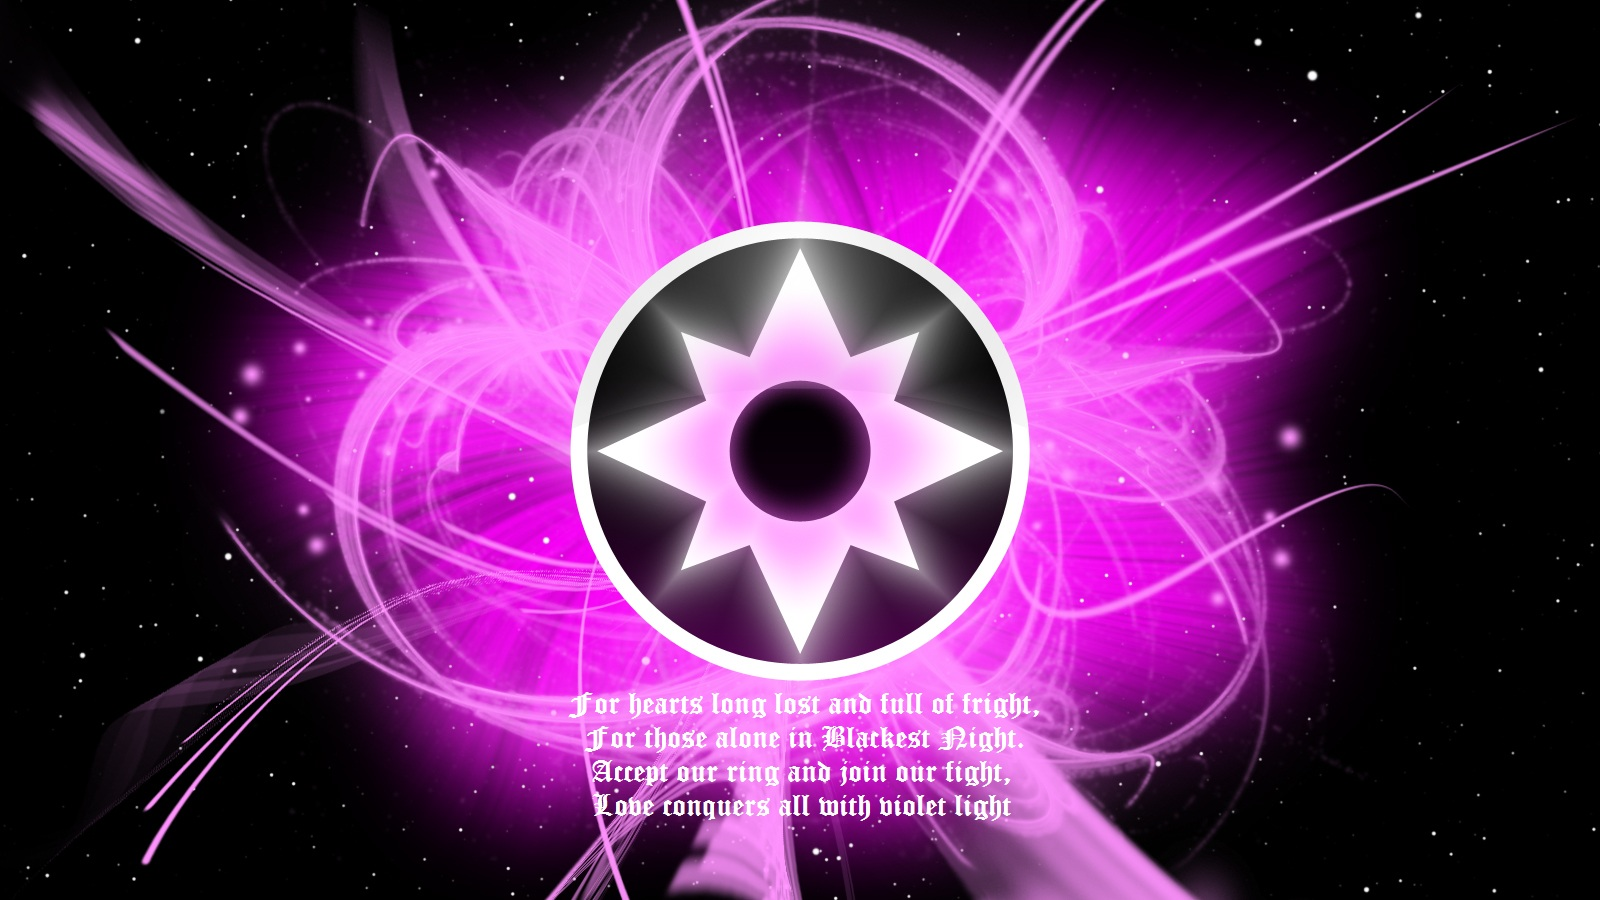 star sapphire corps - Background hd | 1440x900 | 91 kB by Daisy .